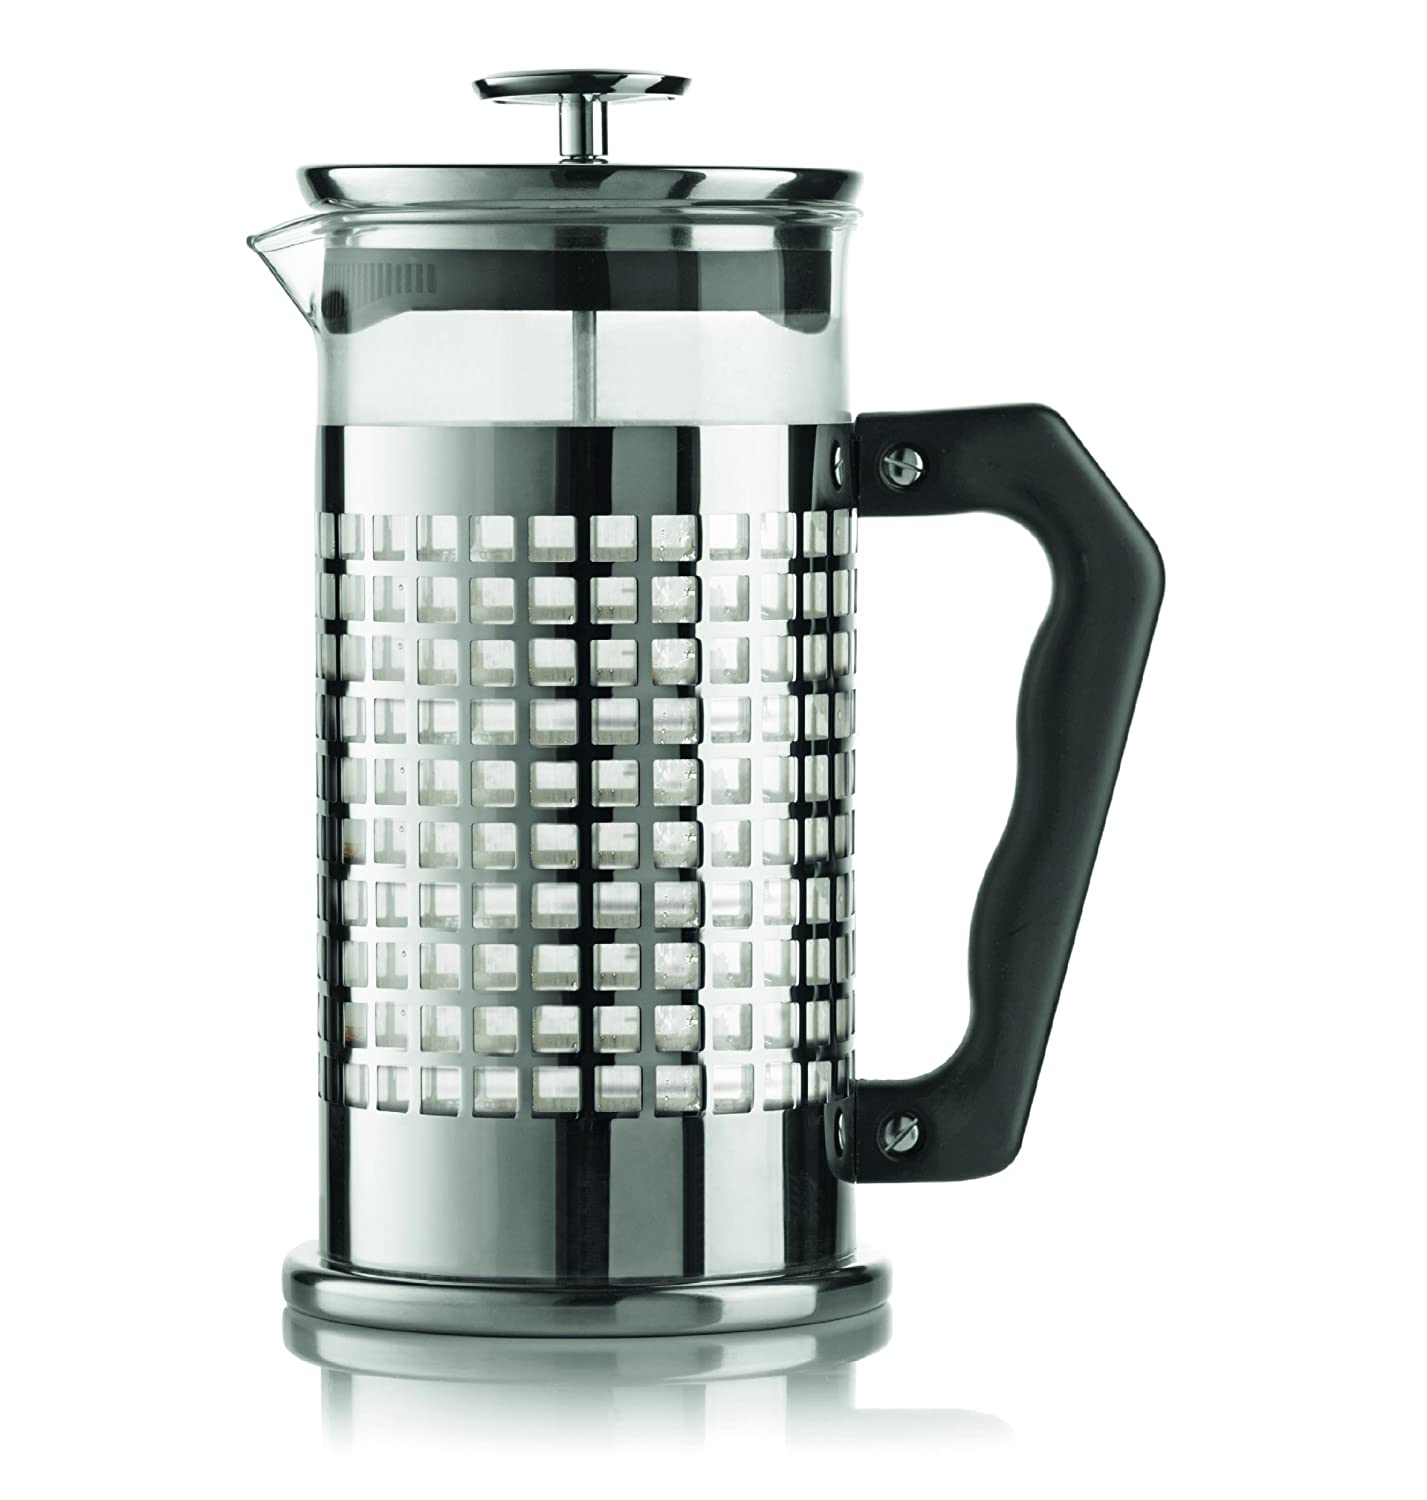 Bialetti 6706 1L French Press Simplicity Coffee Maker 06706